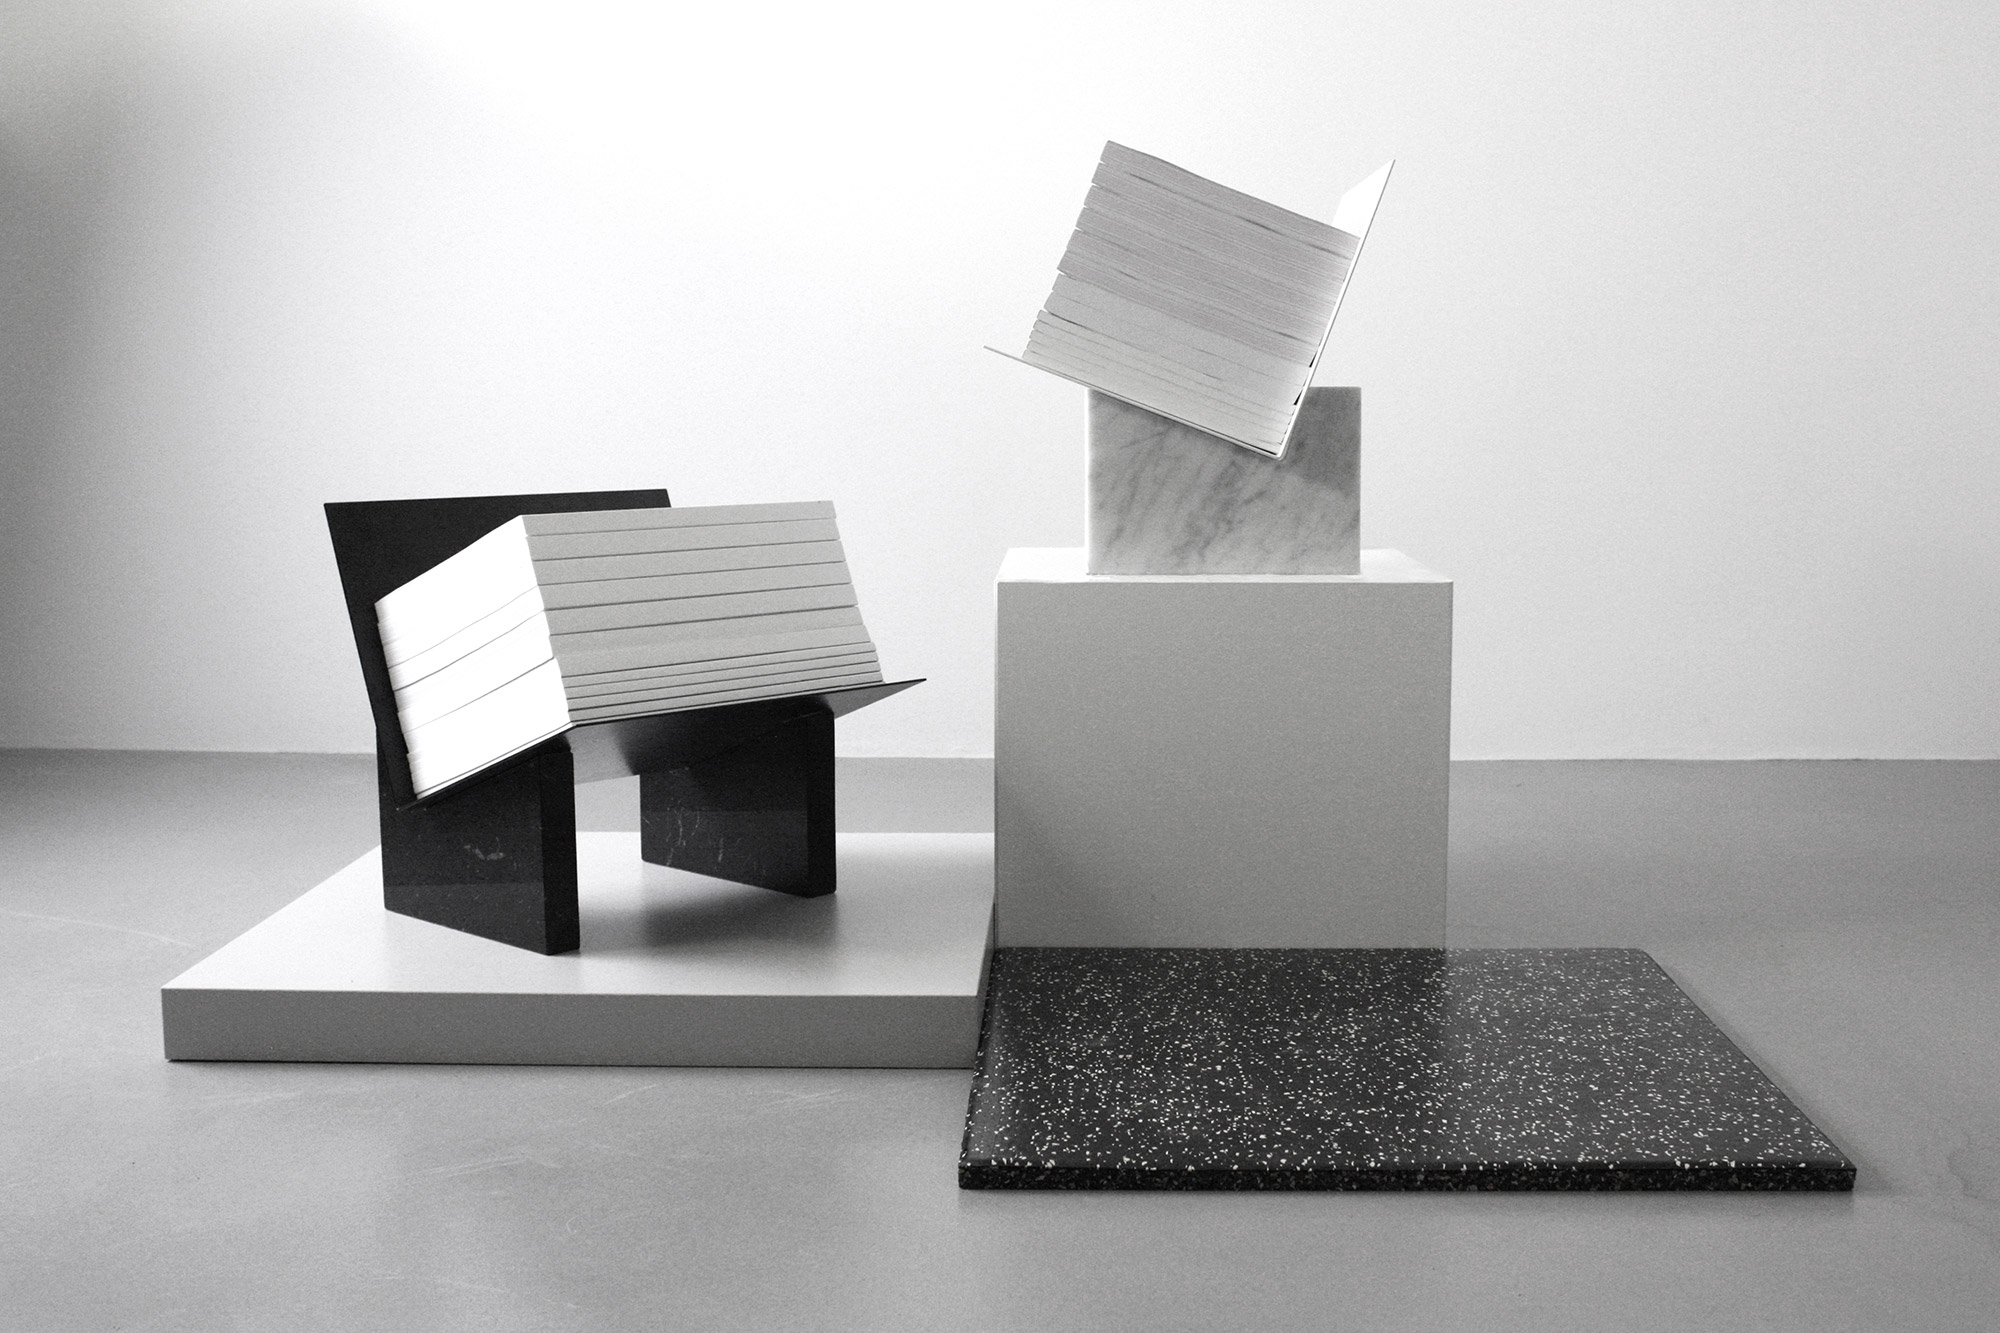 MONUMENTS - this bold design turns a mundane magazine holder into a really dramatic piece. Made with marble and bended metal sheets for a striking architectural feel.